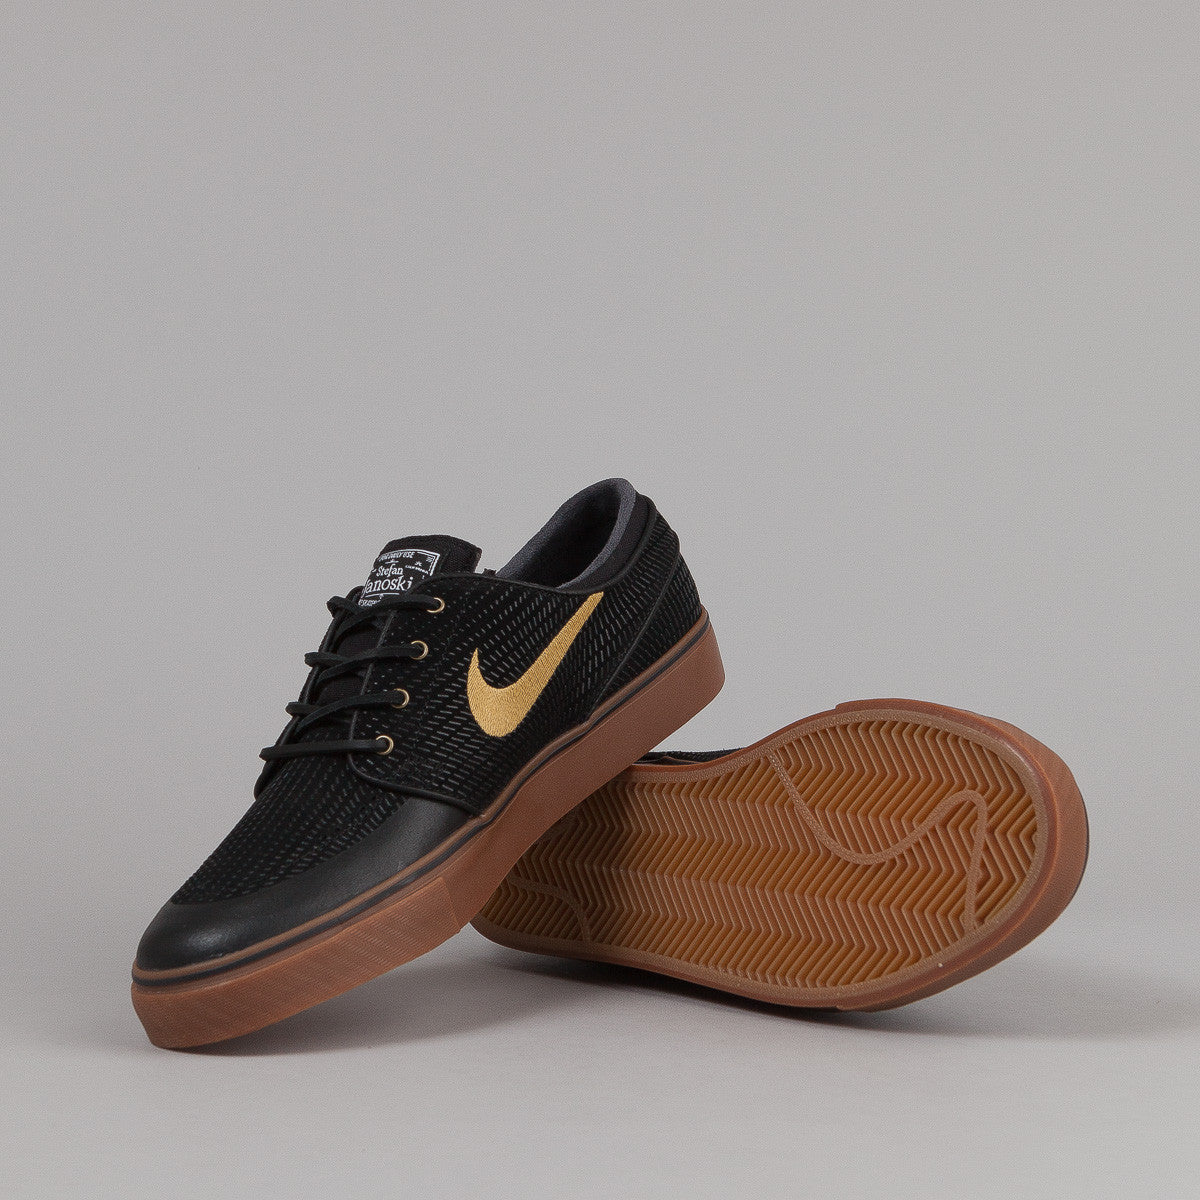 Nike SB Stefan Janoski PR SE Shoes - Black / Metallic Gold / Gum Med Brown / White